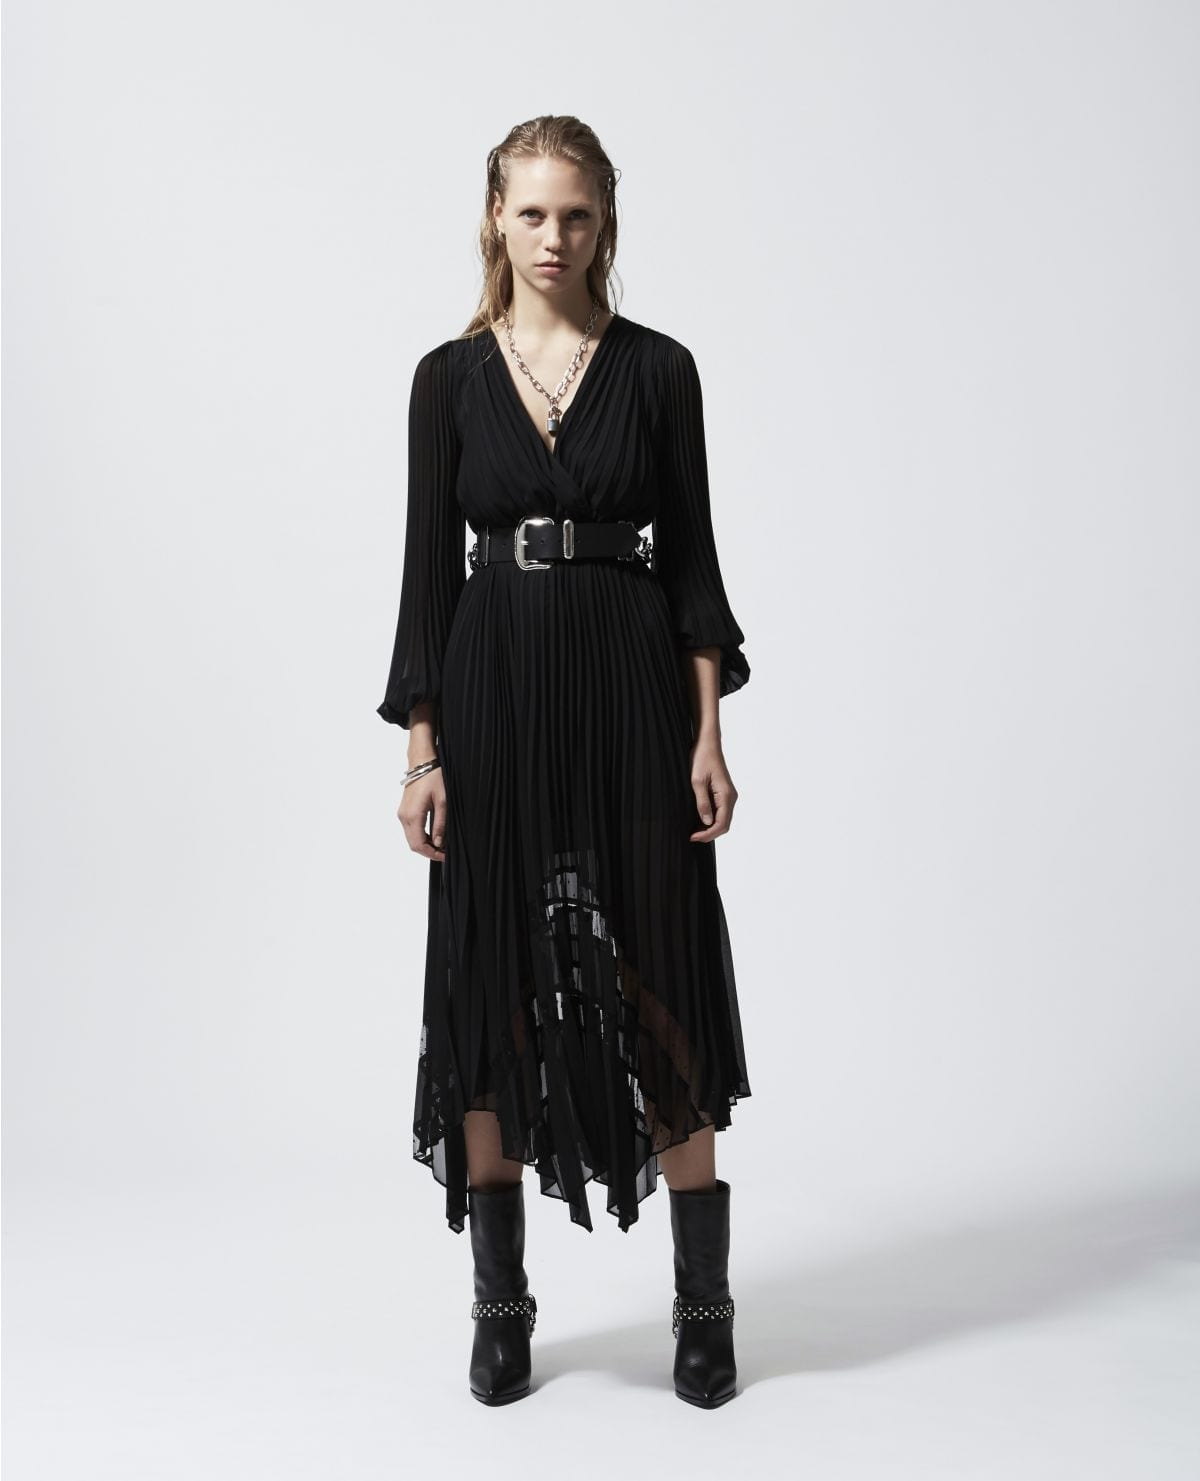 THE KOOPLES Black Long Flowing Dress